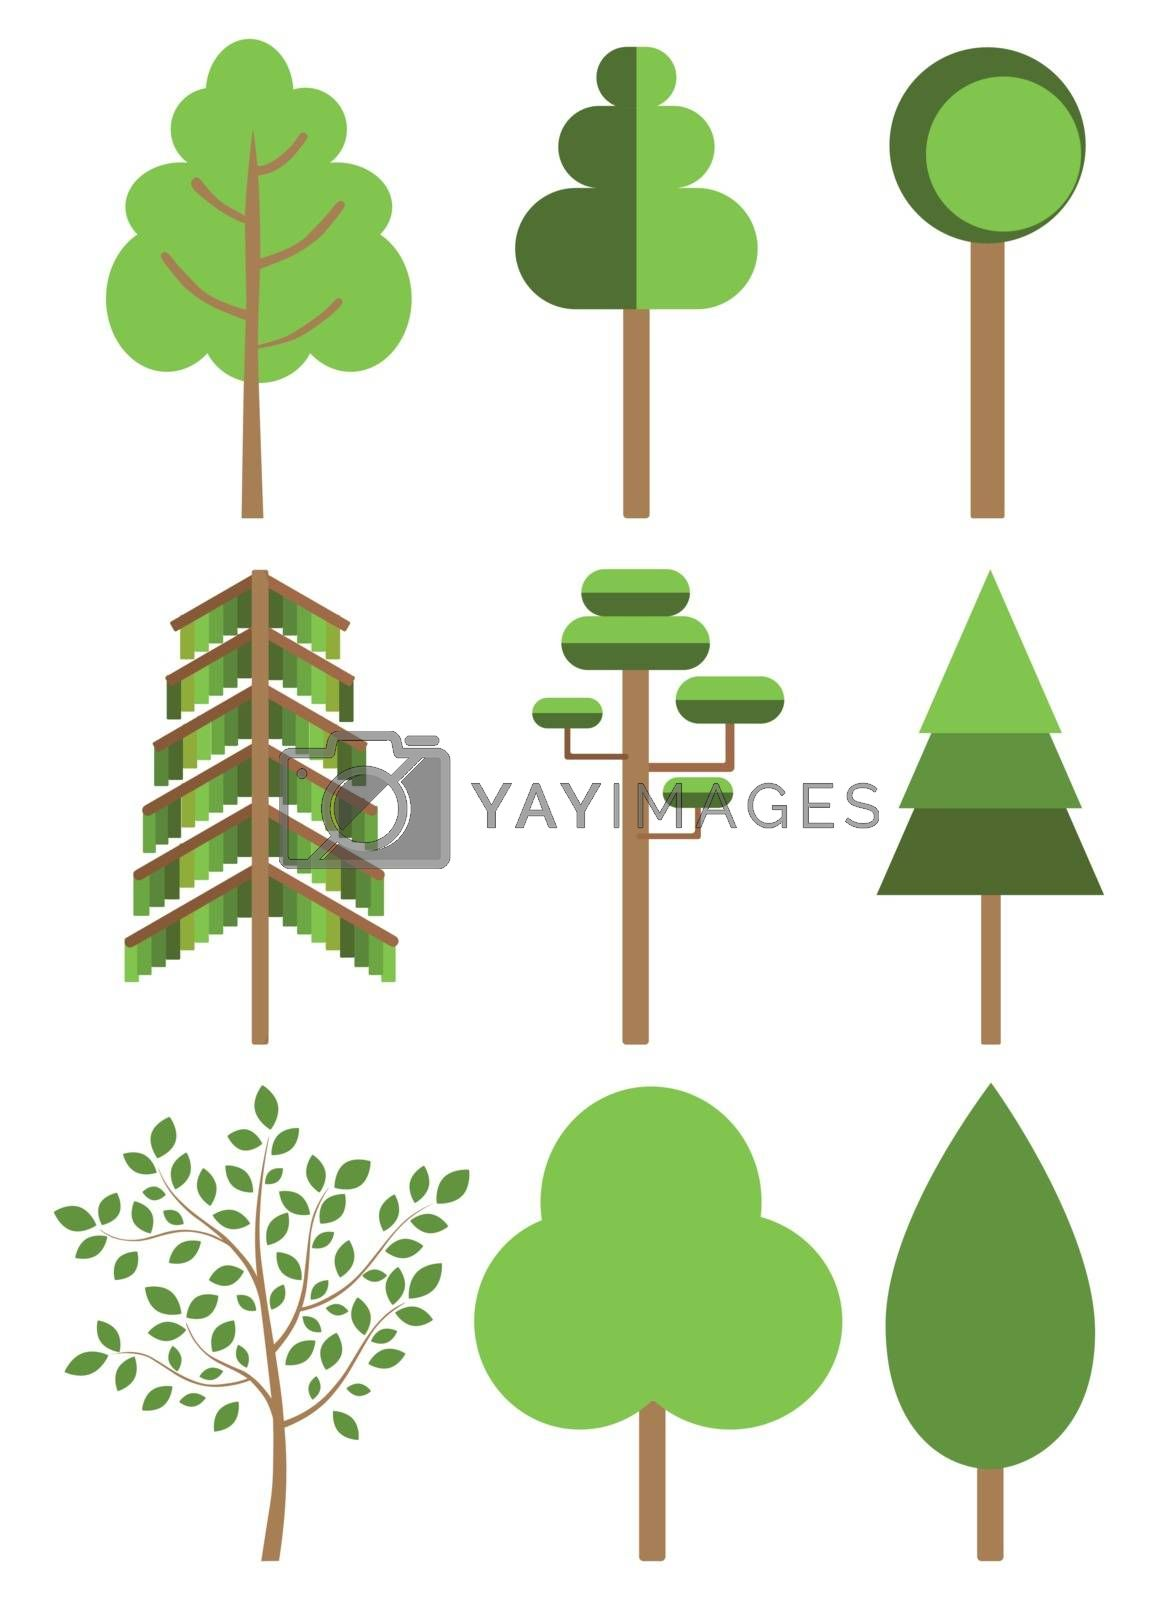 Origami tree template icons in green colors, paper flat trees isolated on white silhouette